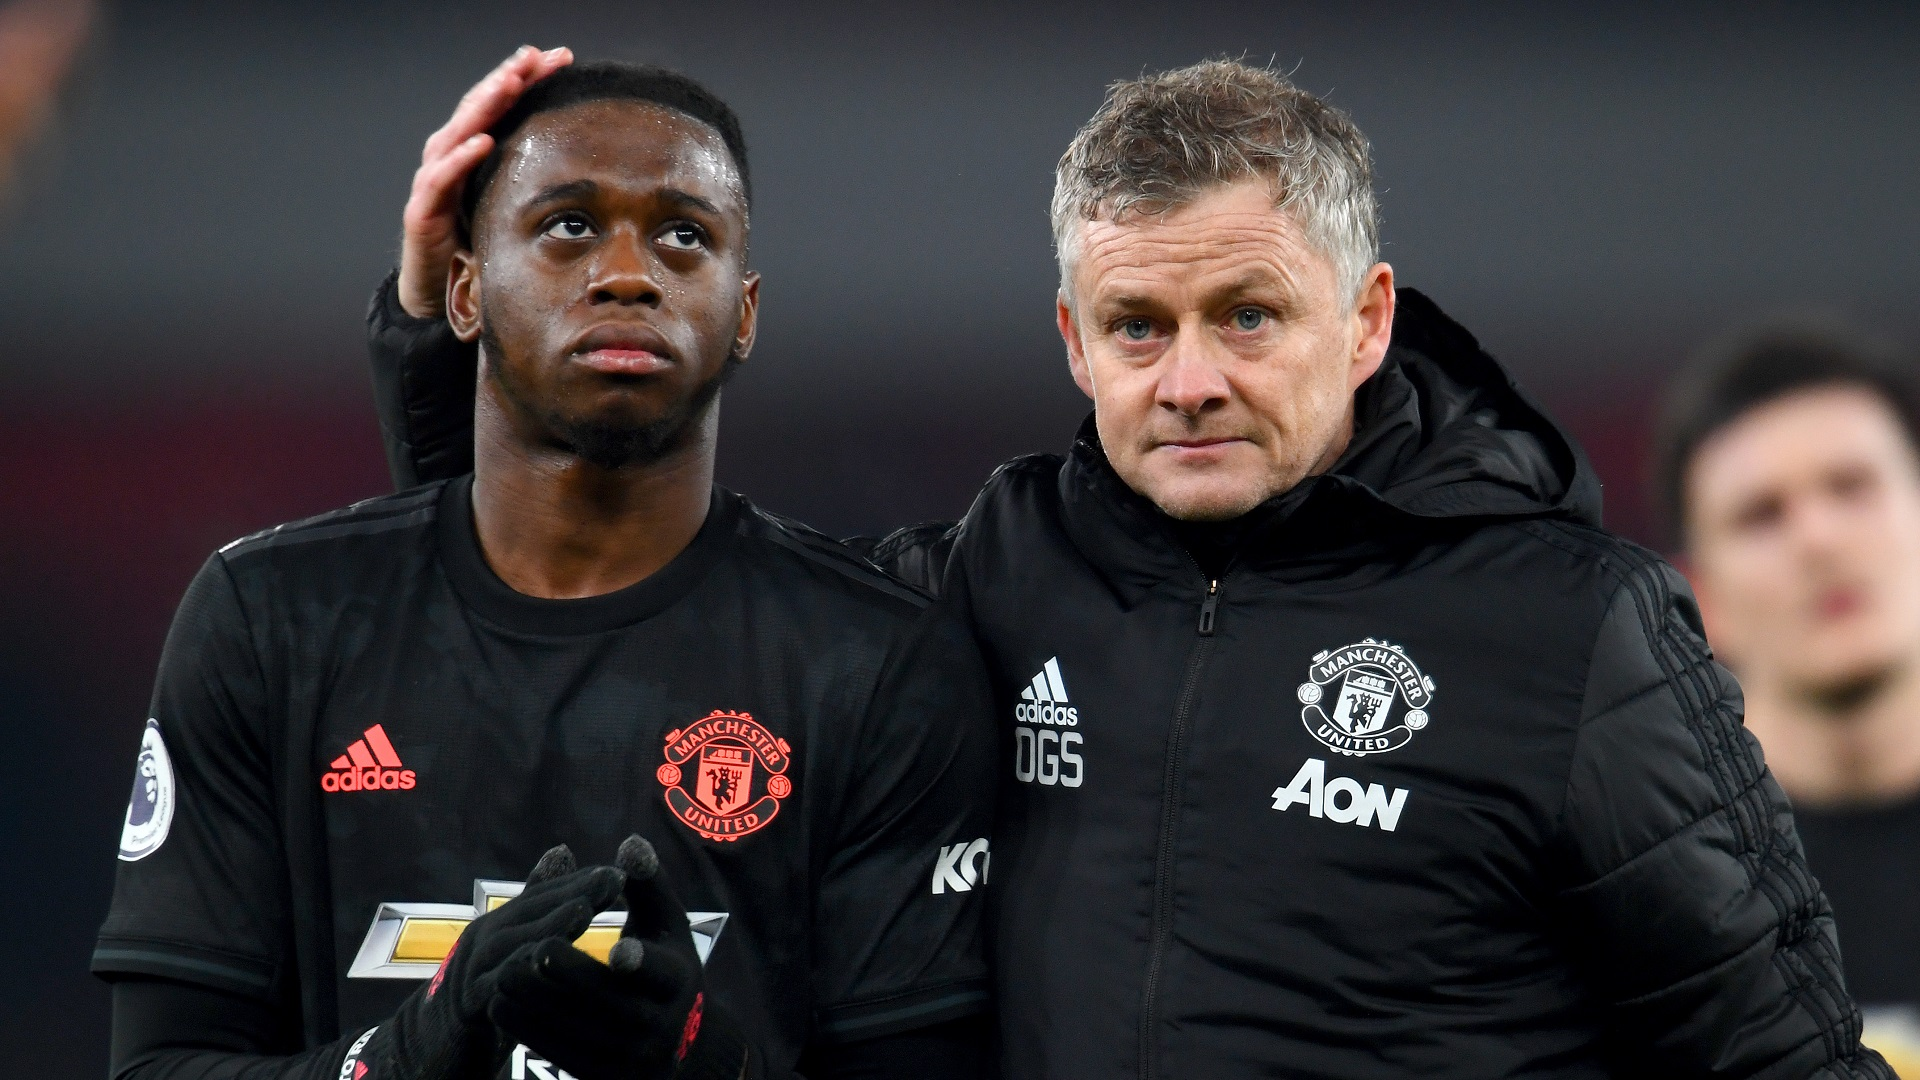 Wan-Bissaka excited by Solskjaer's vision for Man Utd as £50m full-back vows to get better